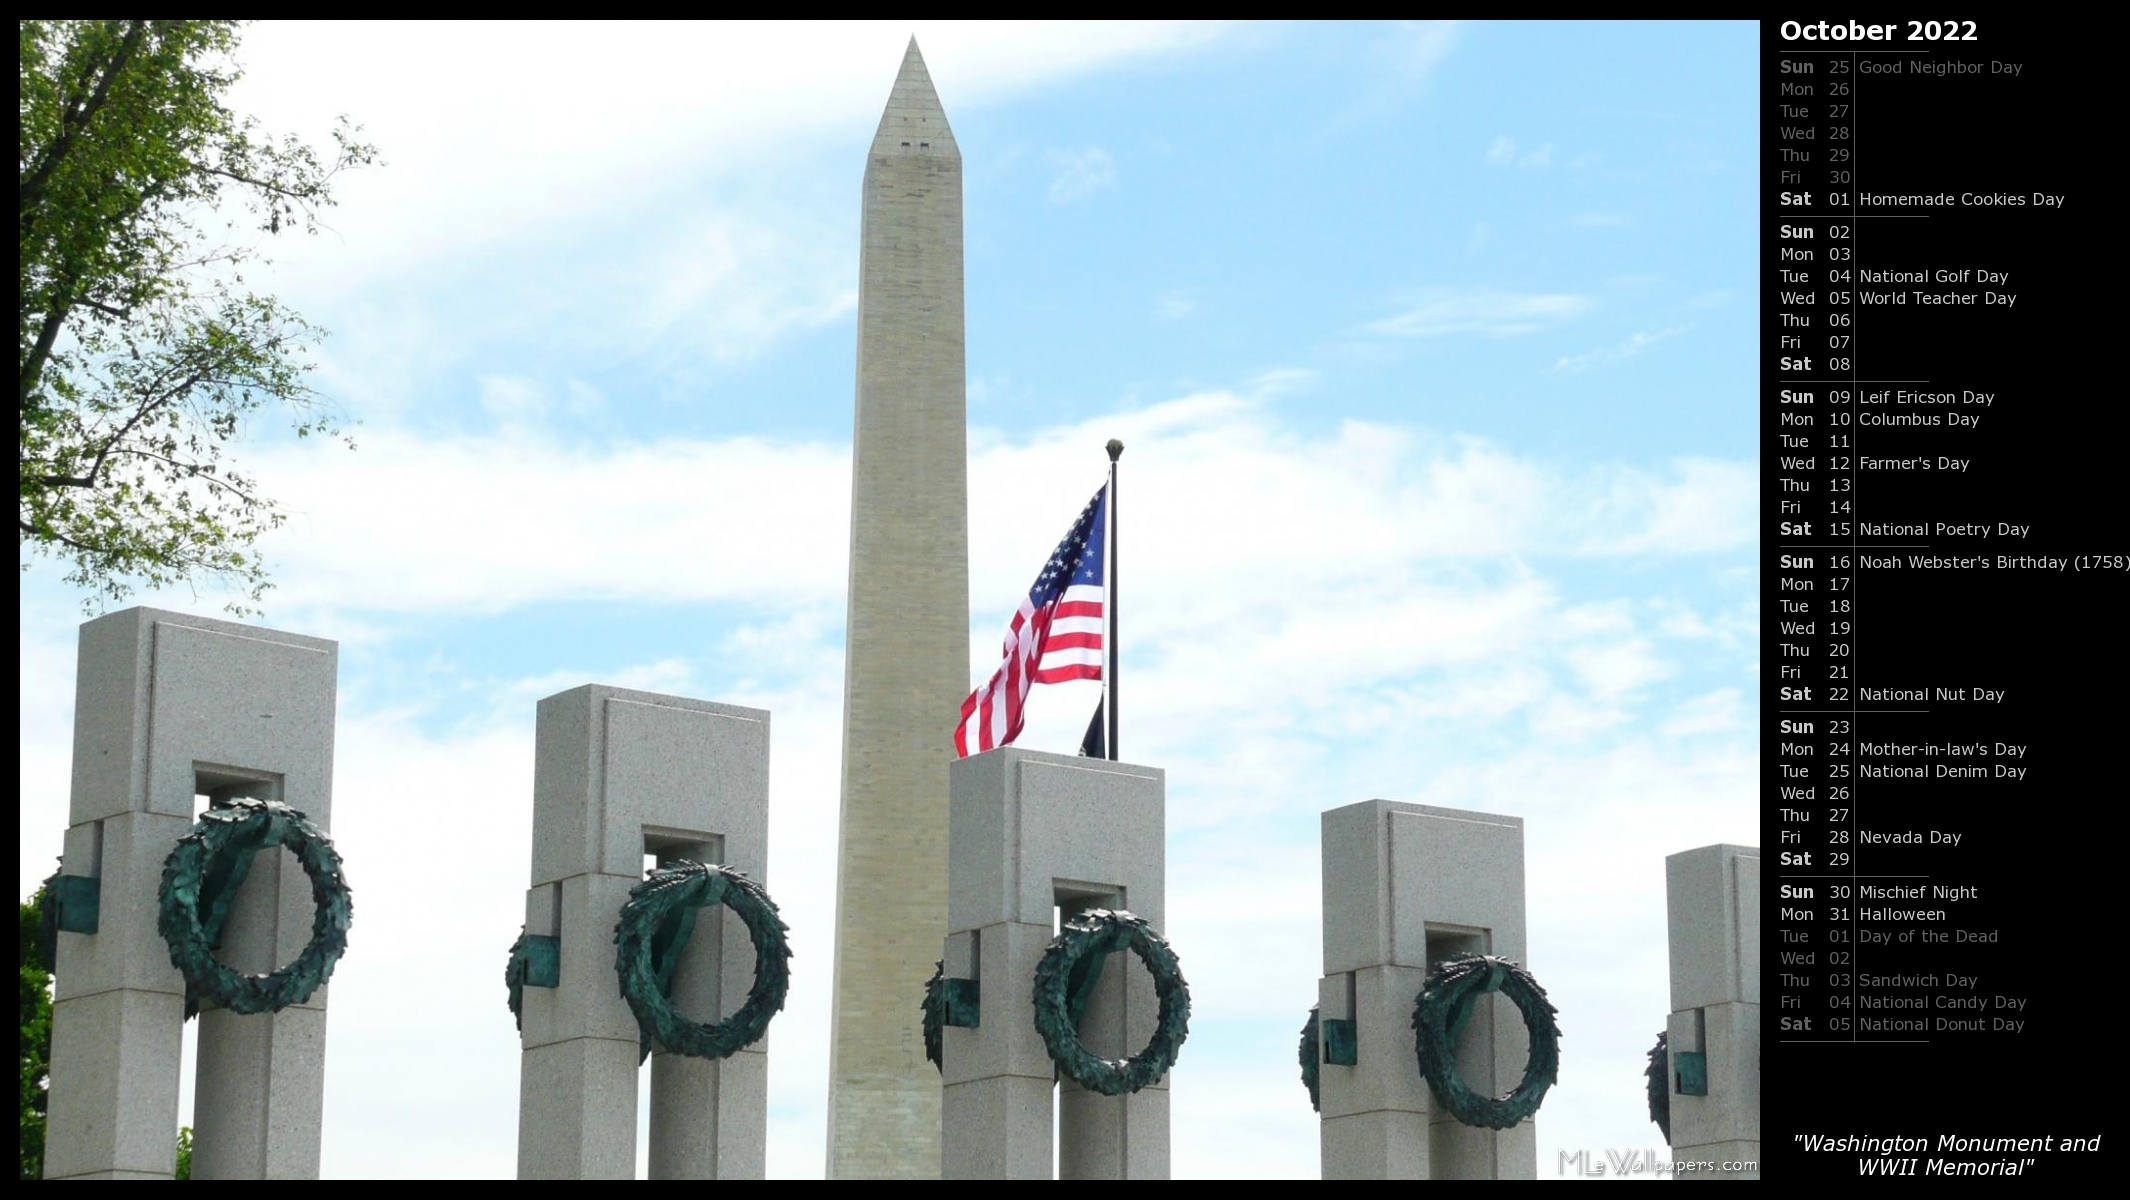 Halloween In Dc Sat 27 2020 MLeWallpapers.  Washington Monument and WWII Memorial (Calendar)